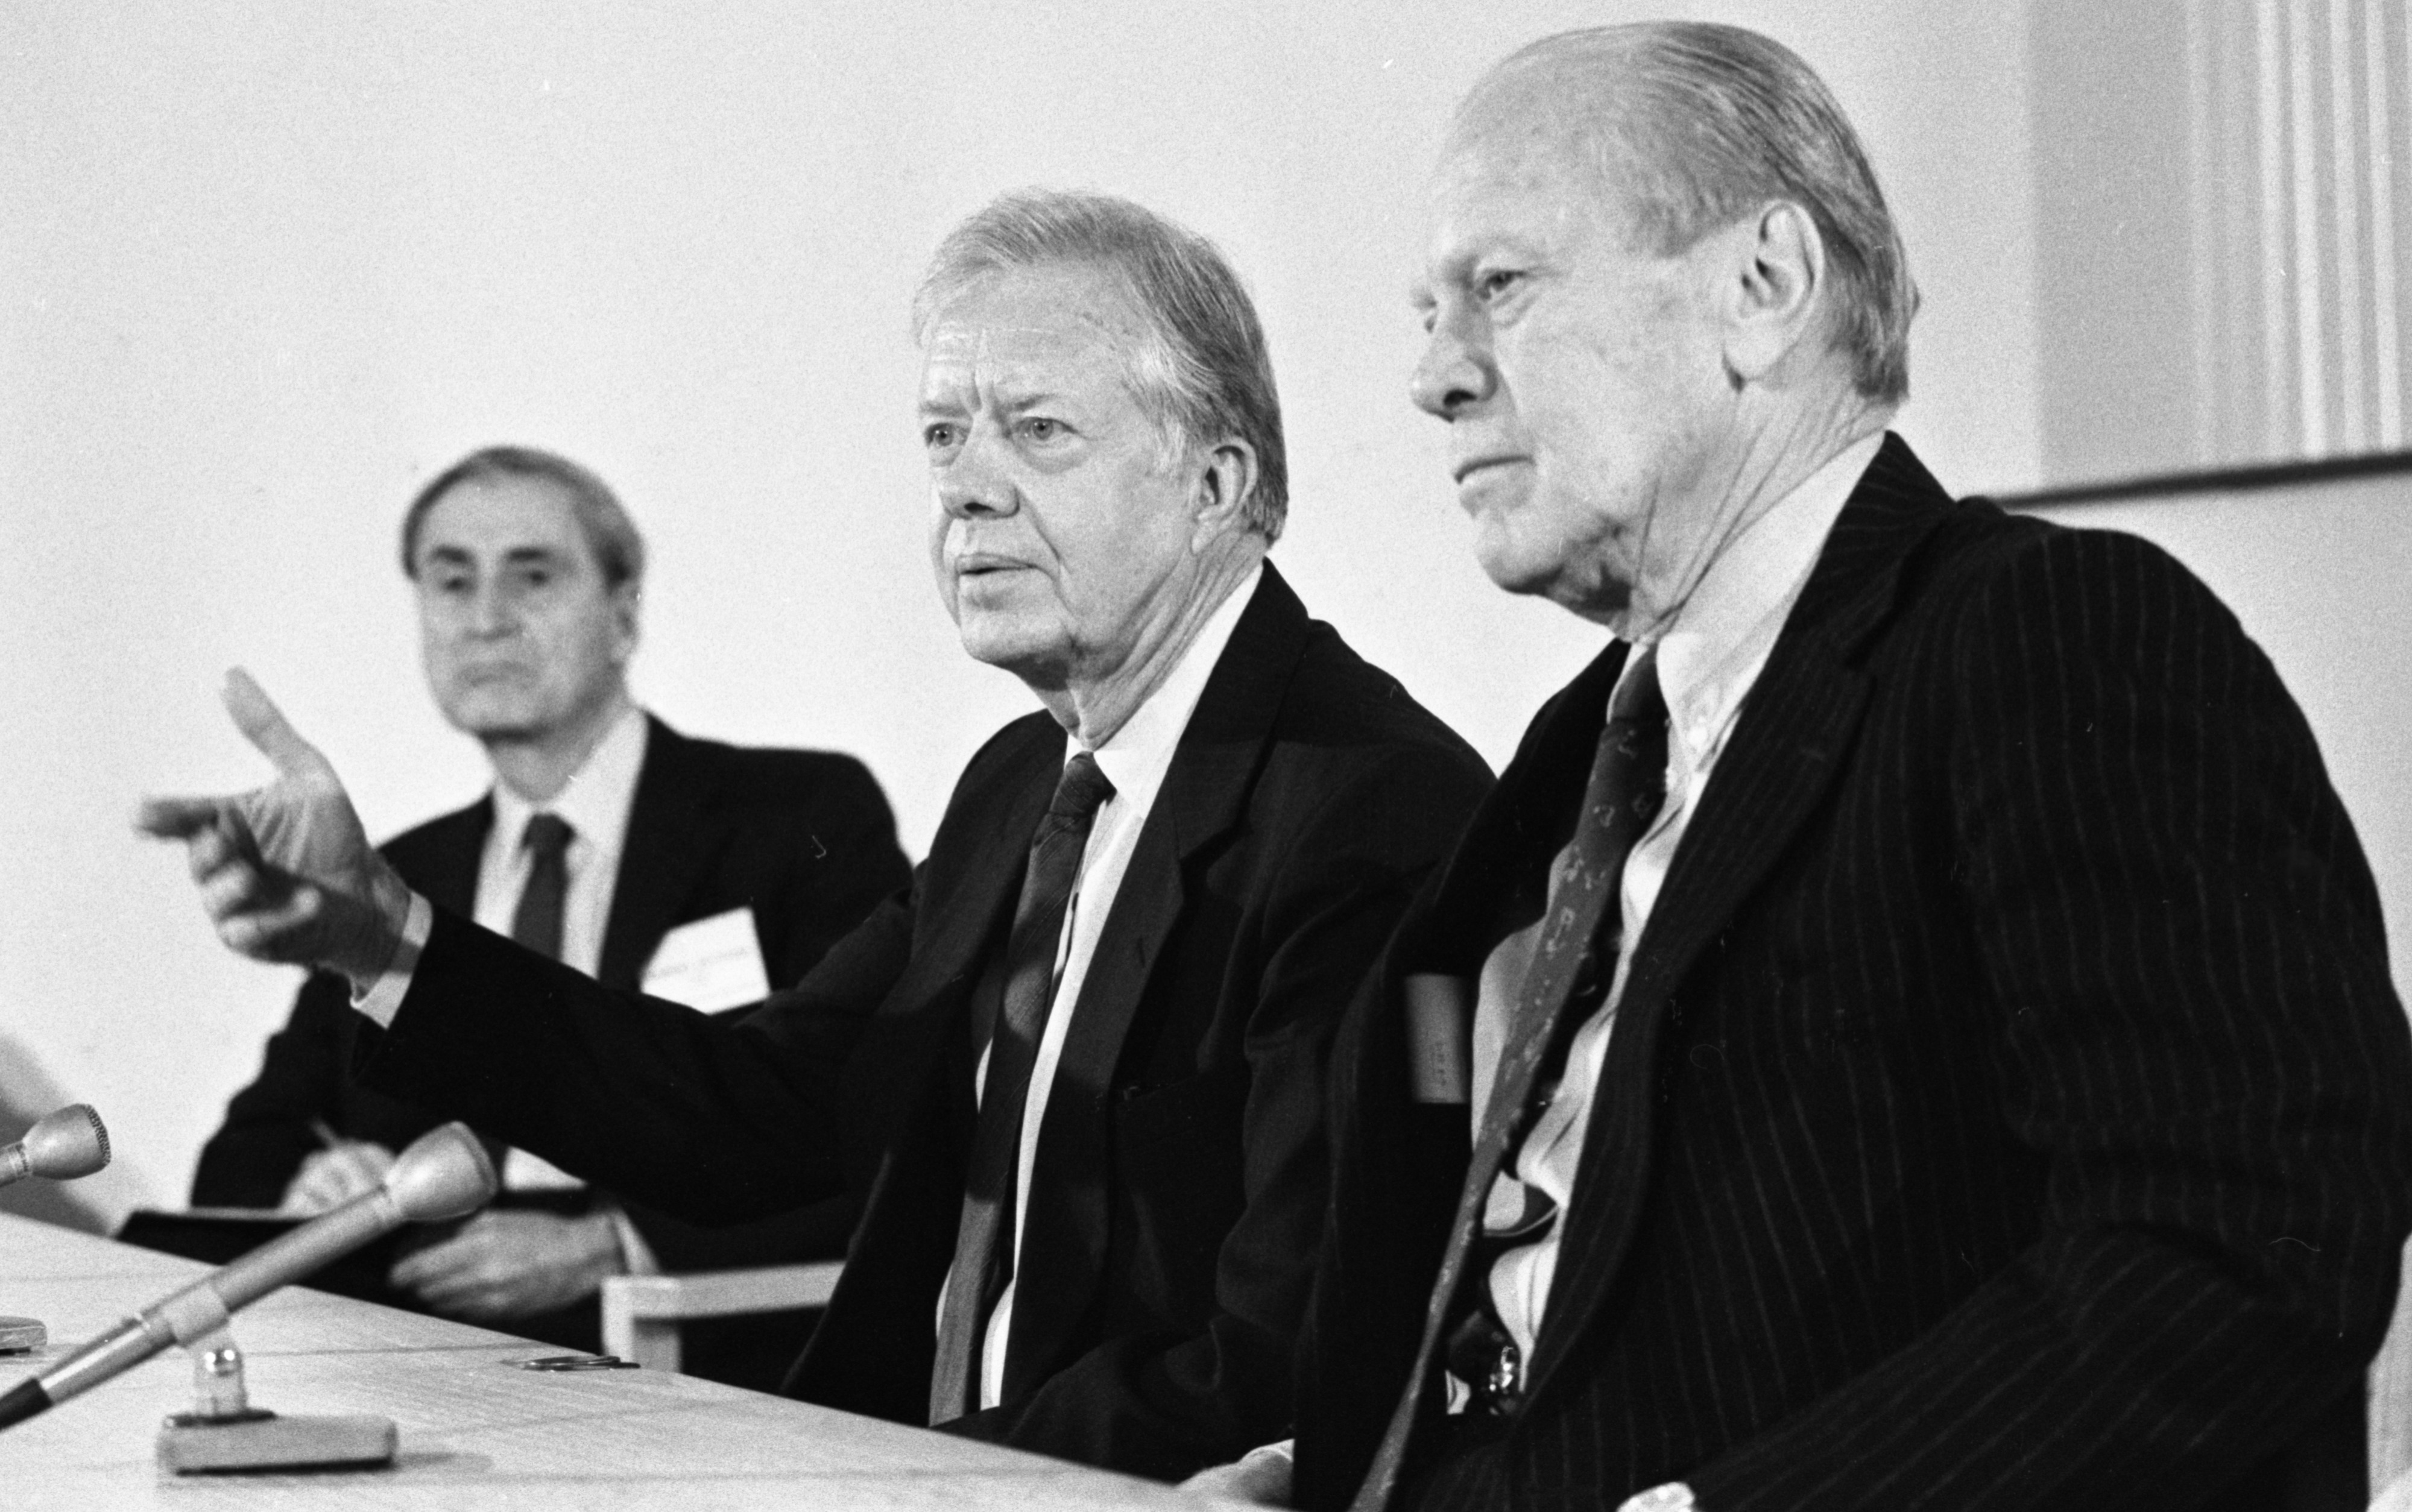 Former Presidents Gerald Ford and Jimmy Carter at All-Democracies Conference, Ann Arbor, December 1988 image